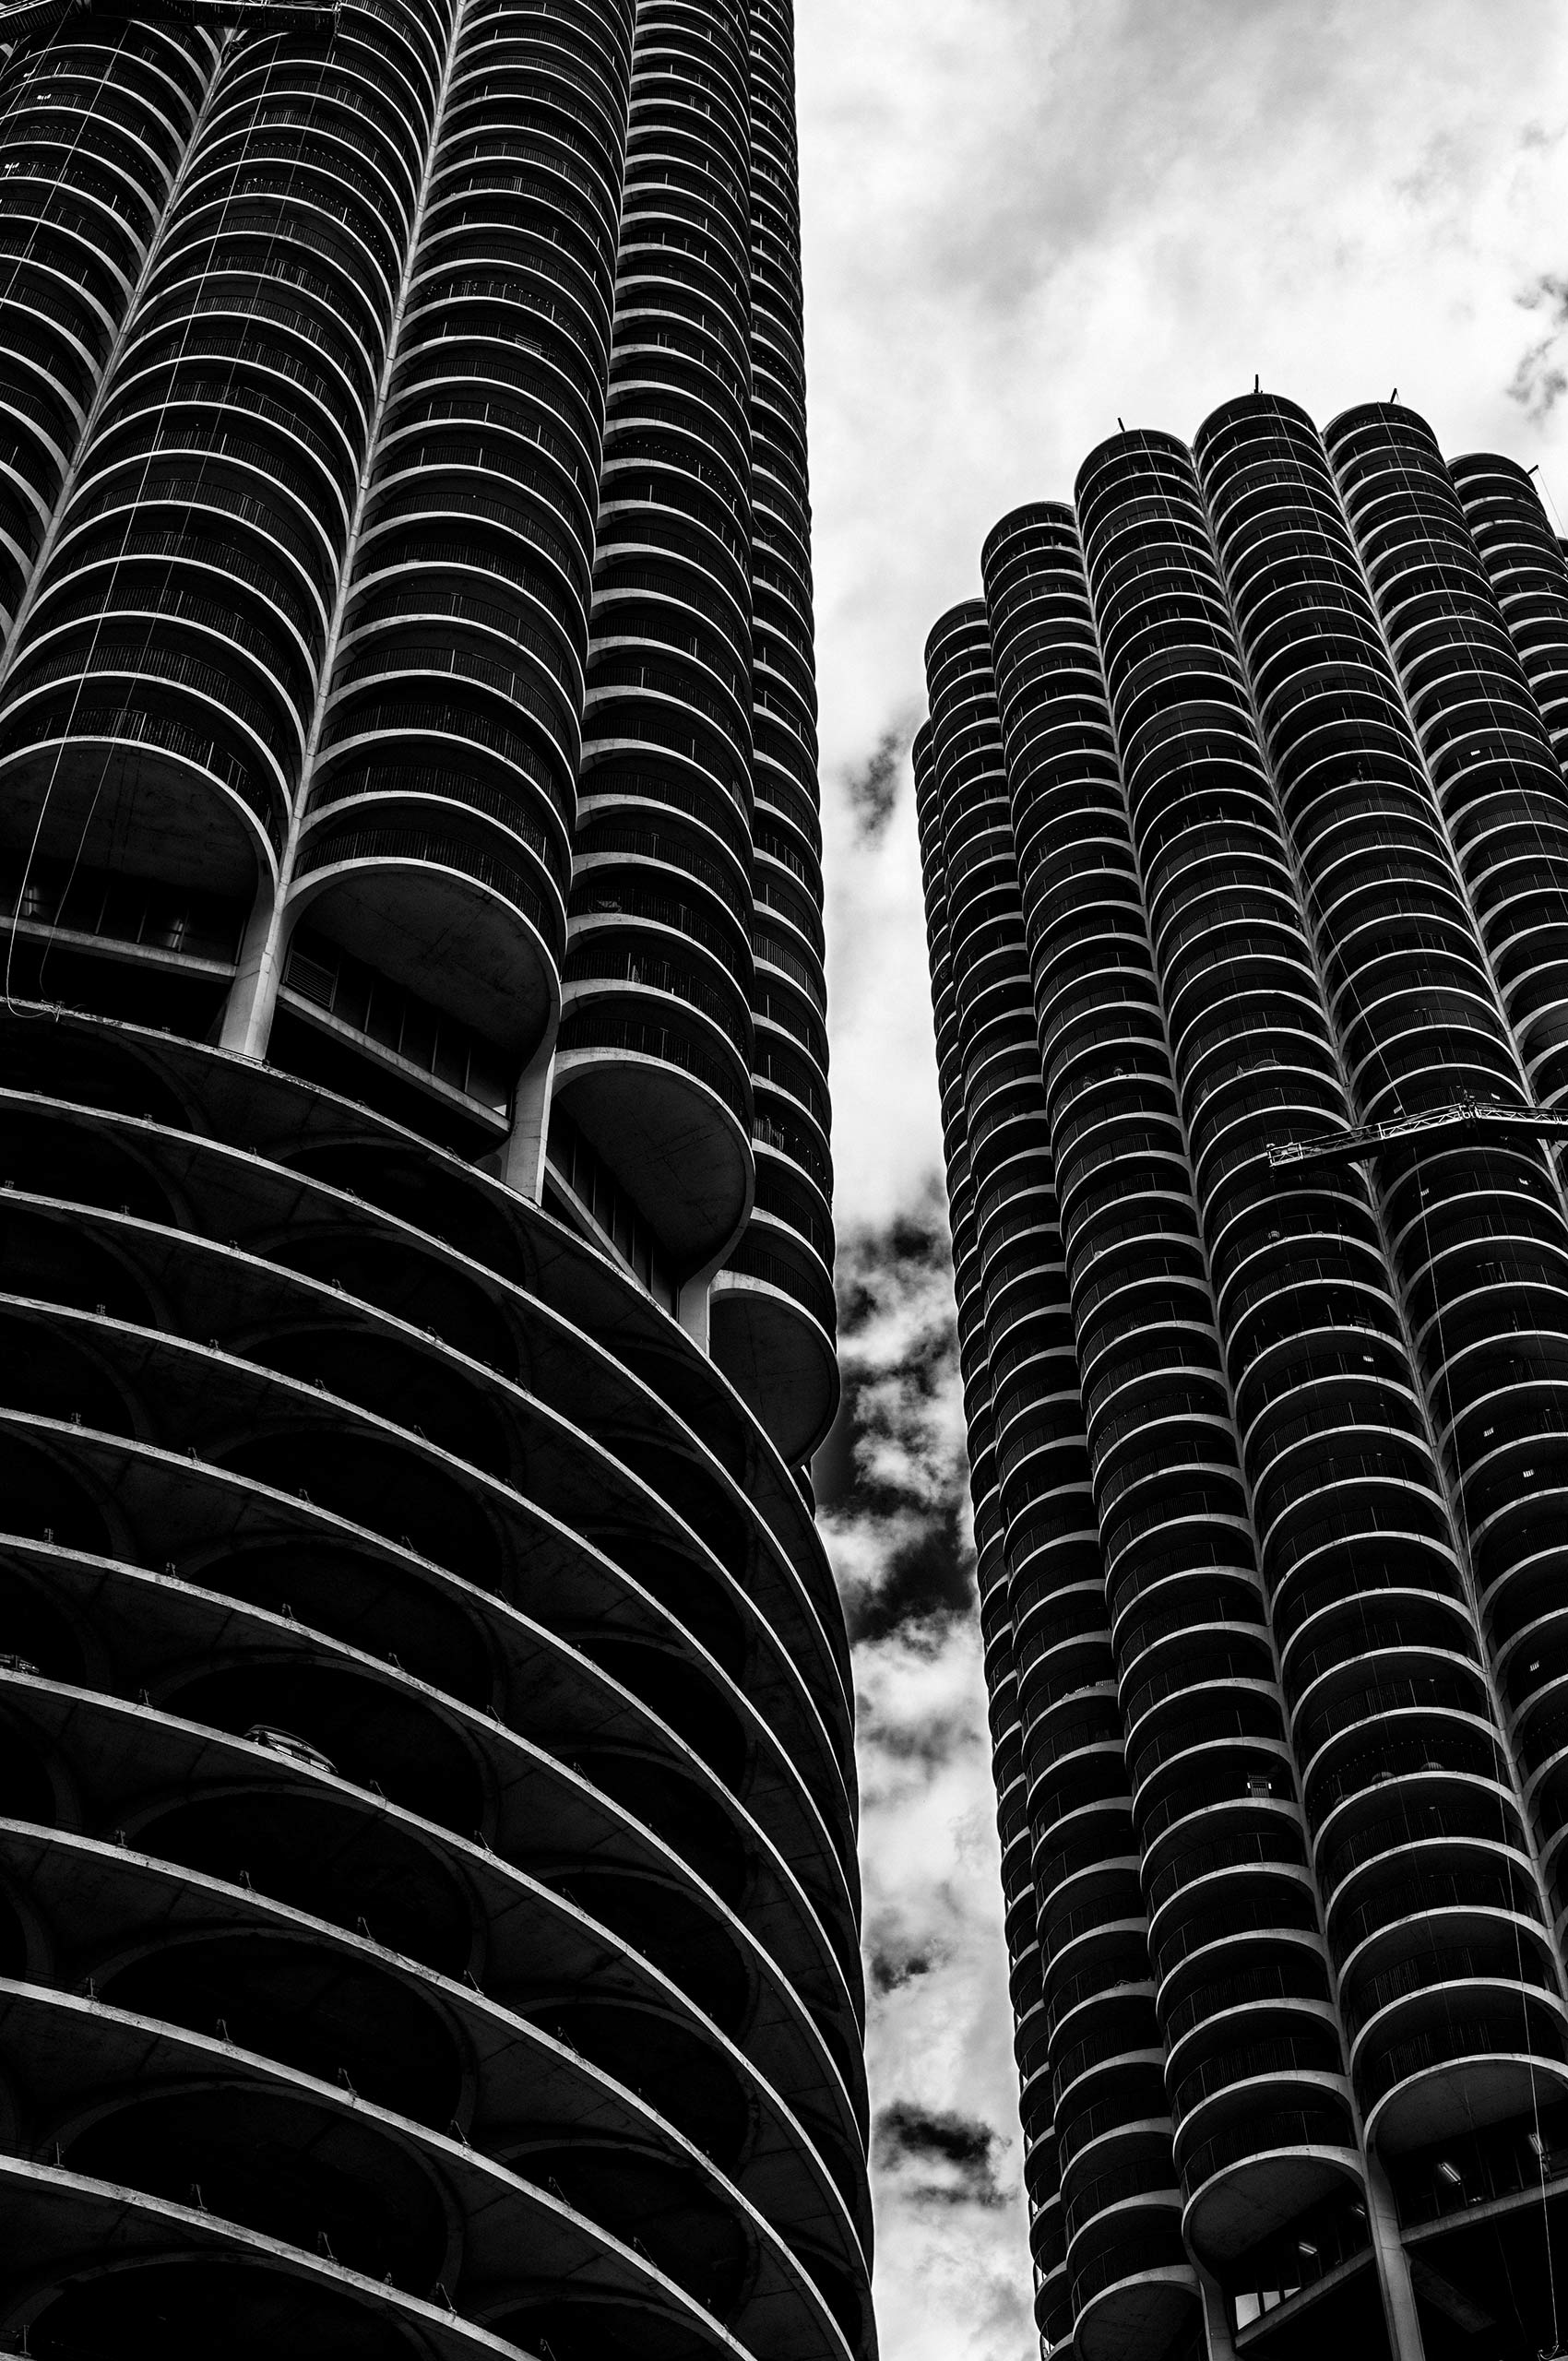 Marina-City-Chicago-HenrikOlundPhotography.jpg